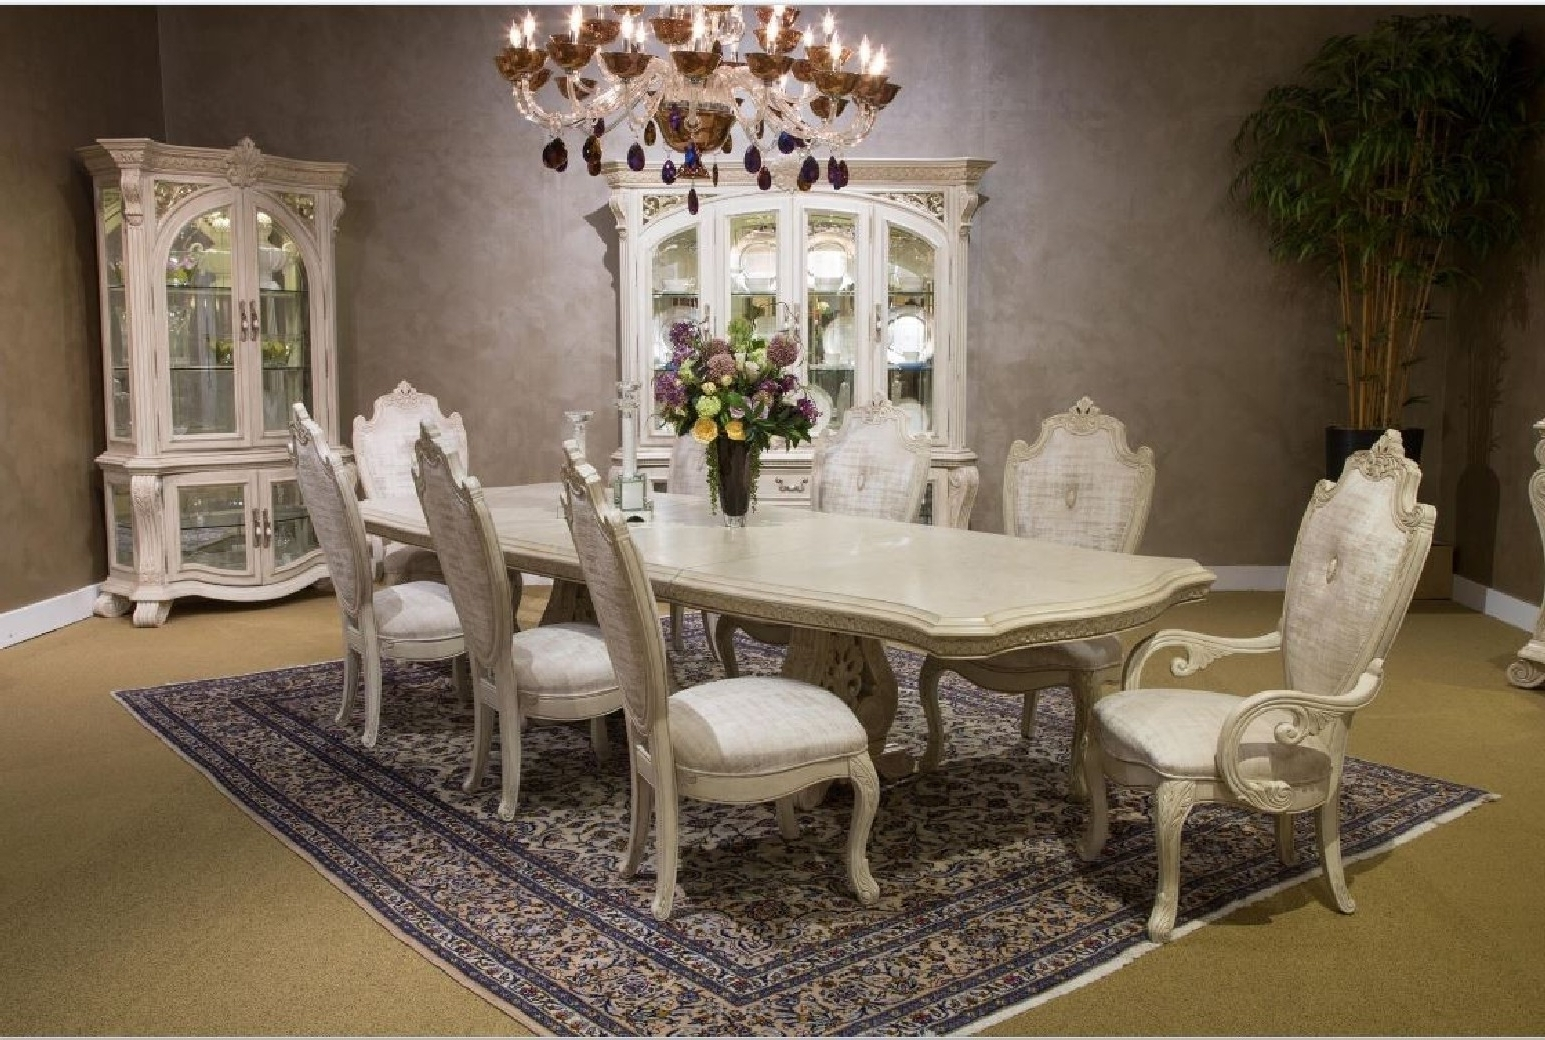 Como Dining Tables Intended For Most Recently Released Aico Villa Di Como Dining Room Collectionmichael Amini Moonlight (View 7 of 25)